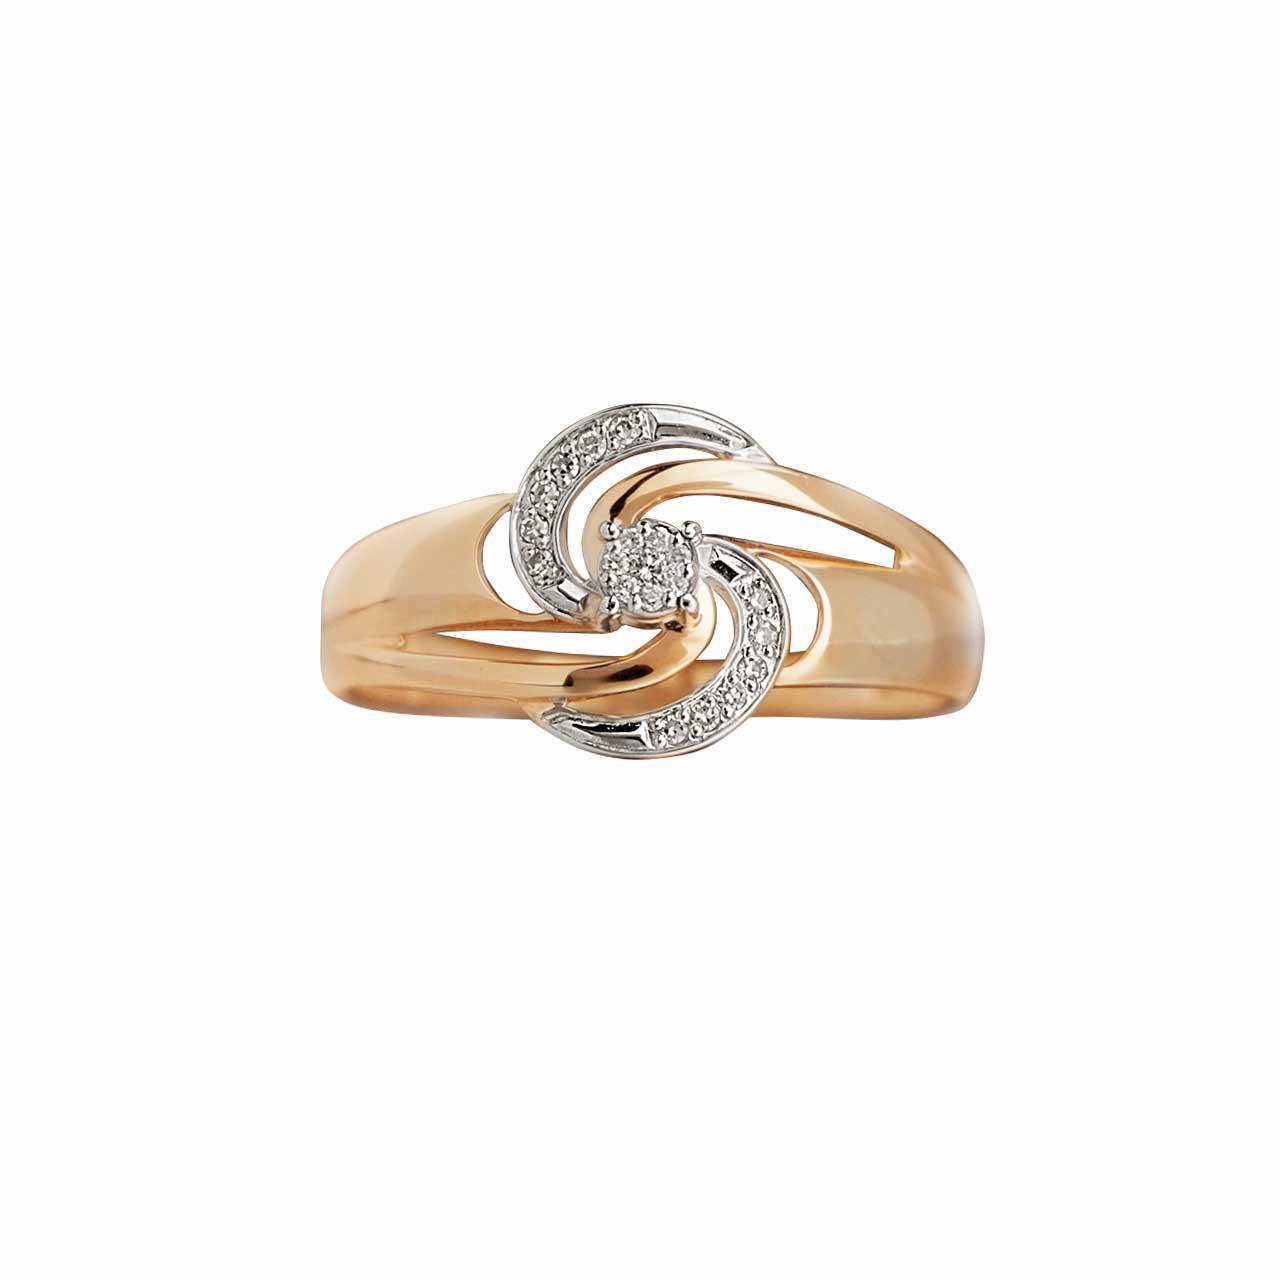 Galactic Diamond 585 Rose and White Gold Ring. View 2